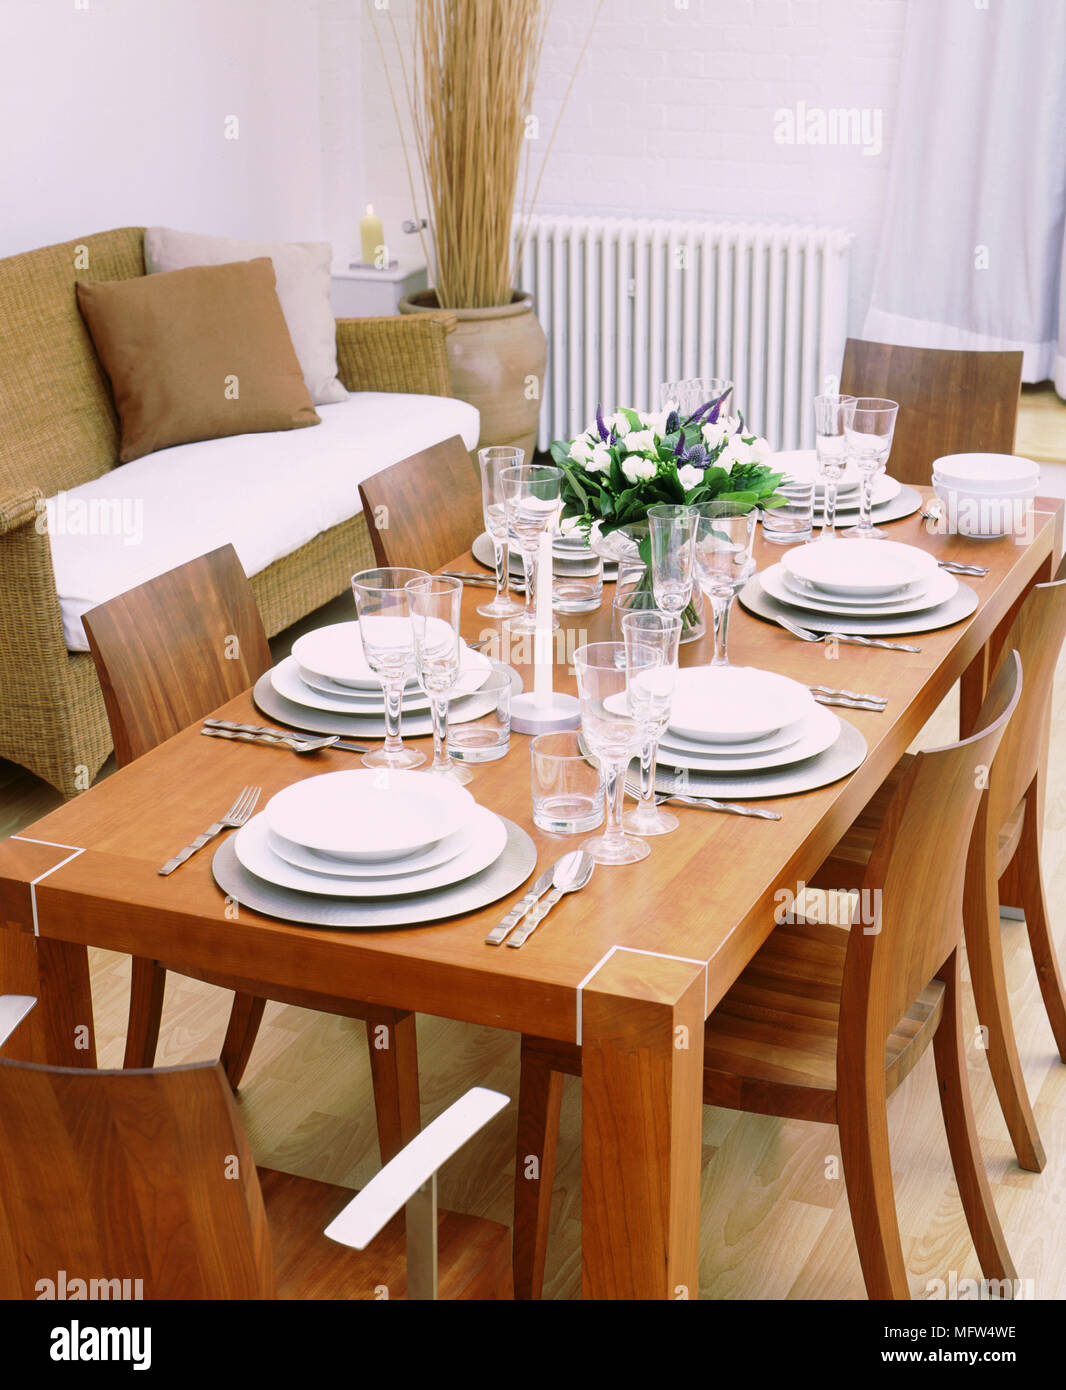 Modern Dining Room Detail Wood Table Chairs White Tableware Stock Photo Alamy